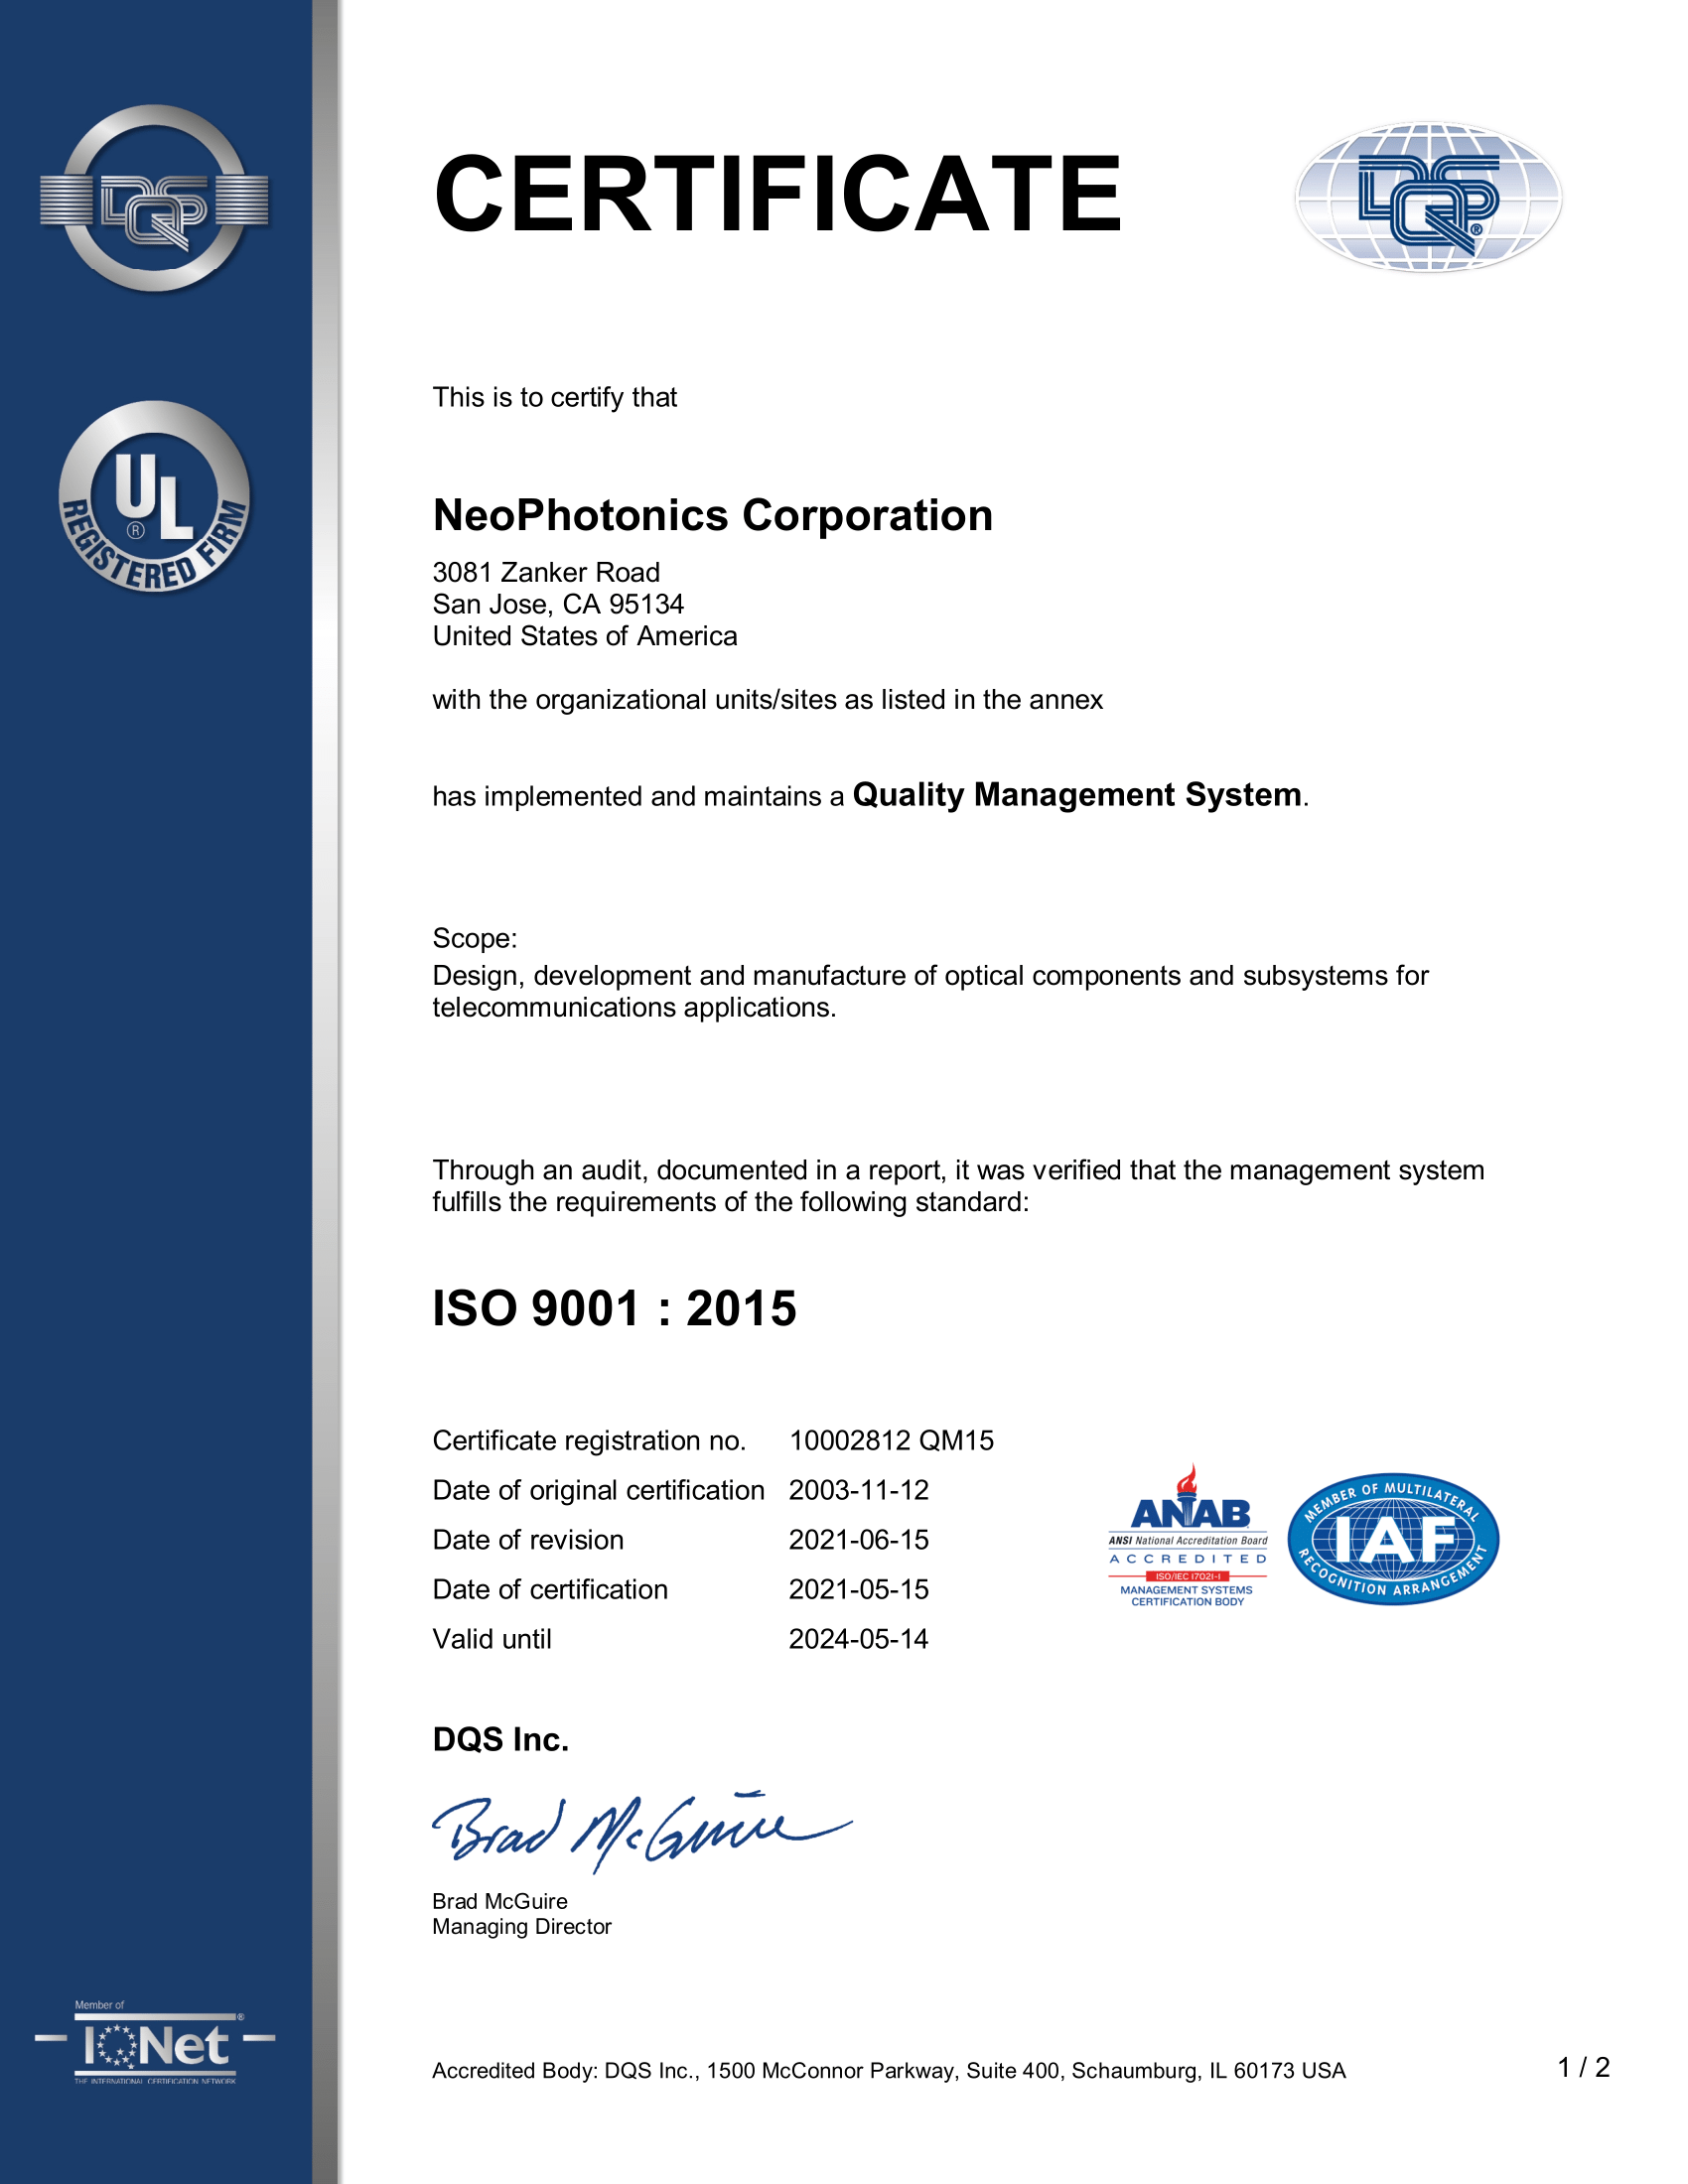 ISO9001 certificate for NSZ-2014-1